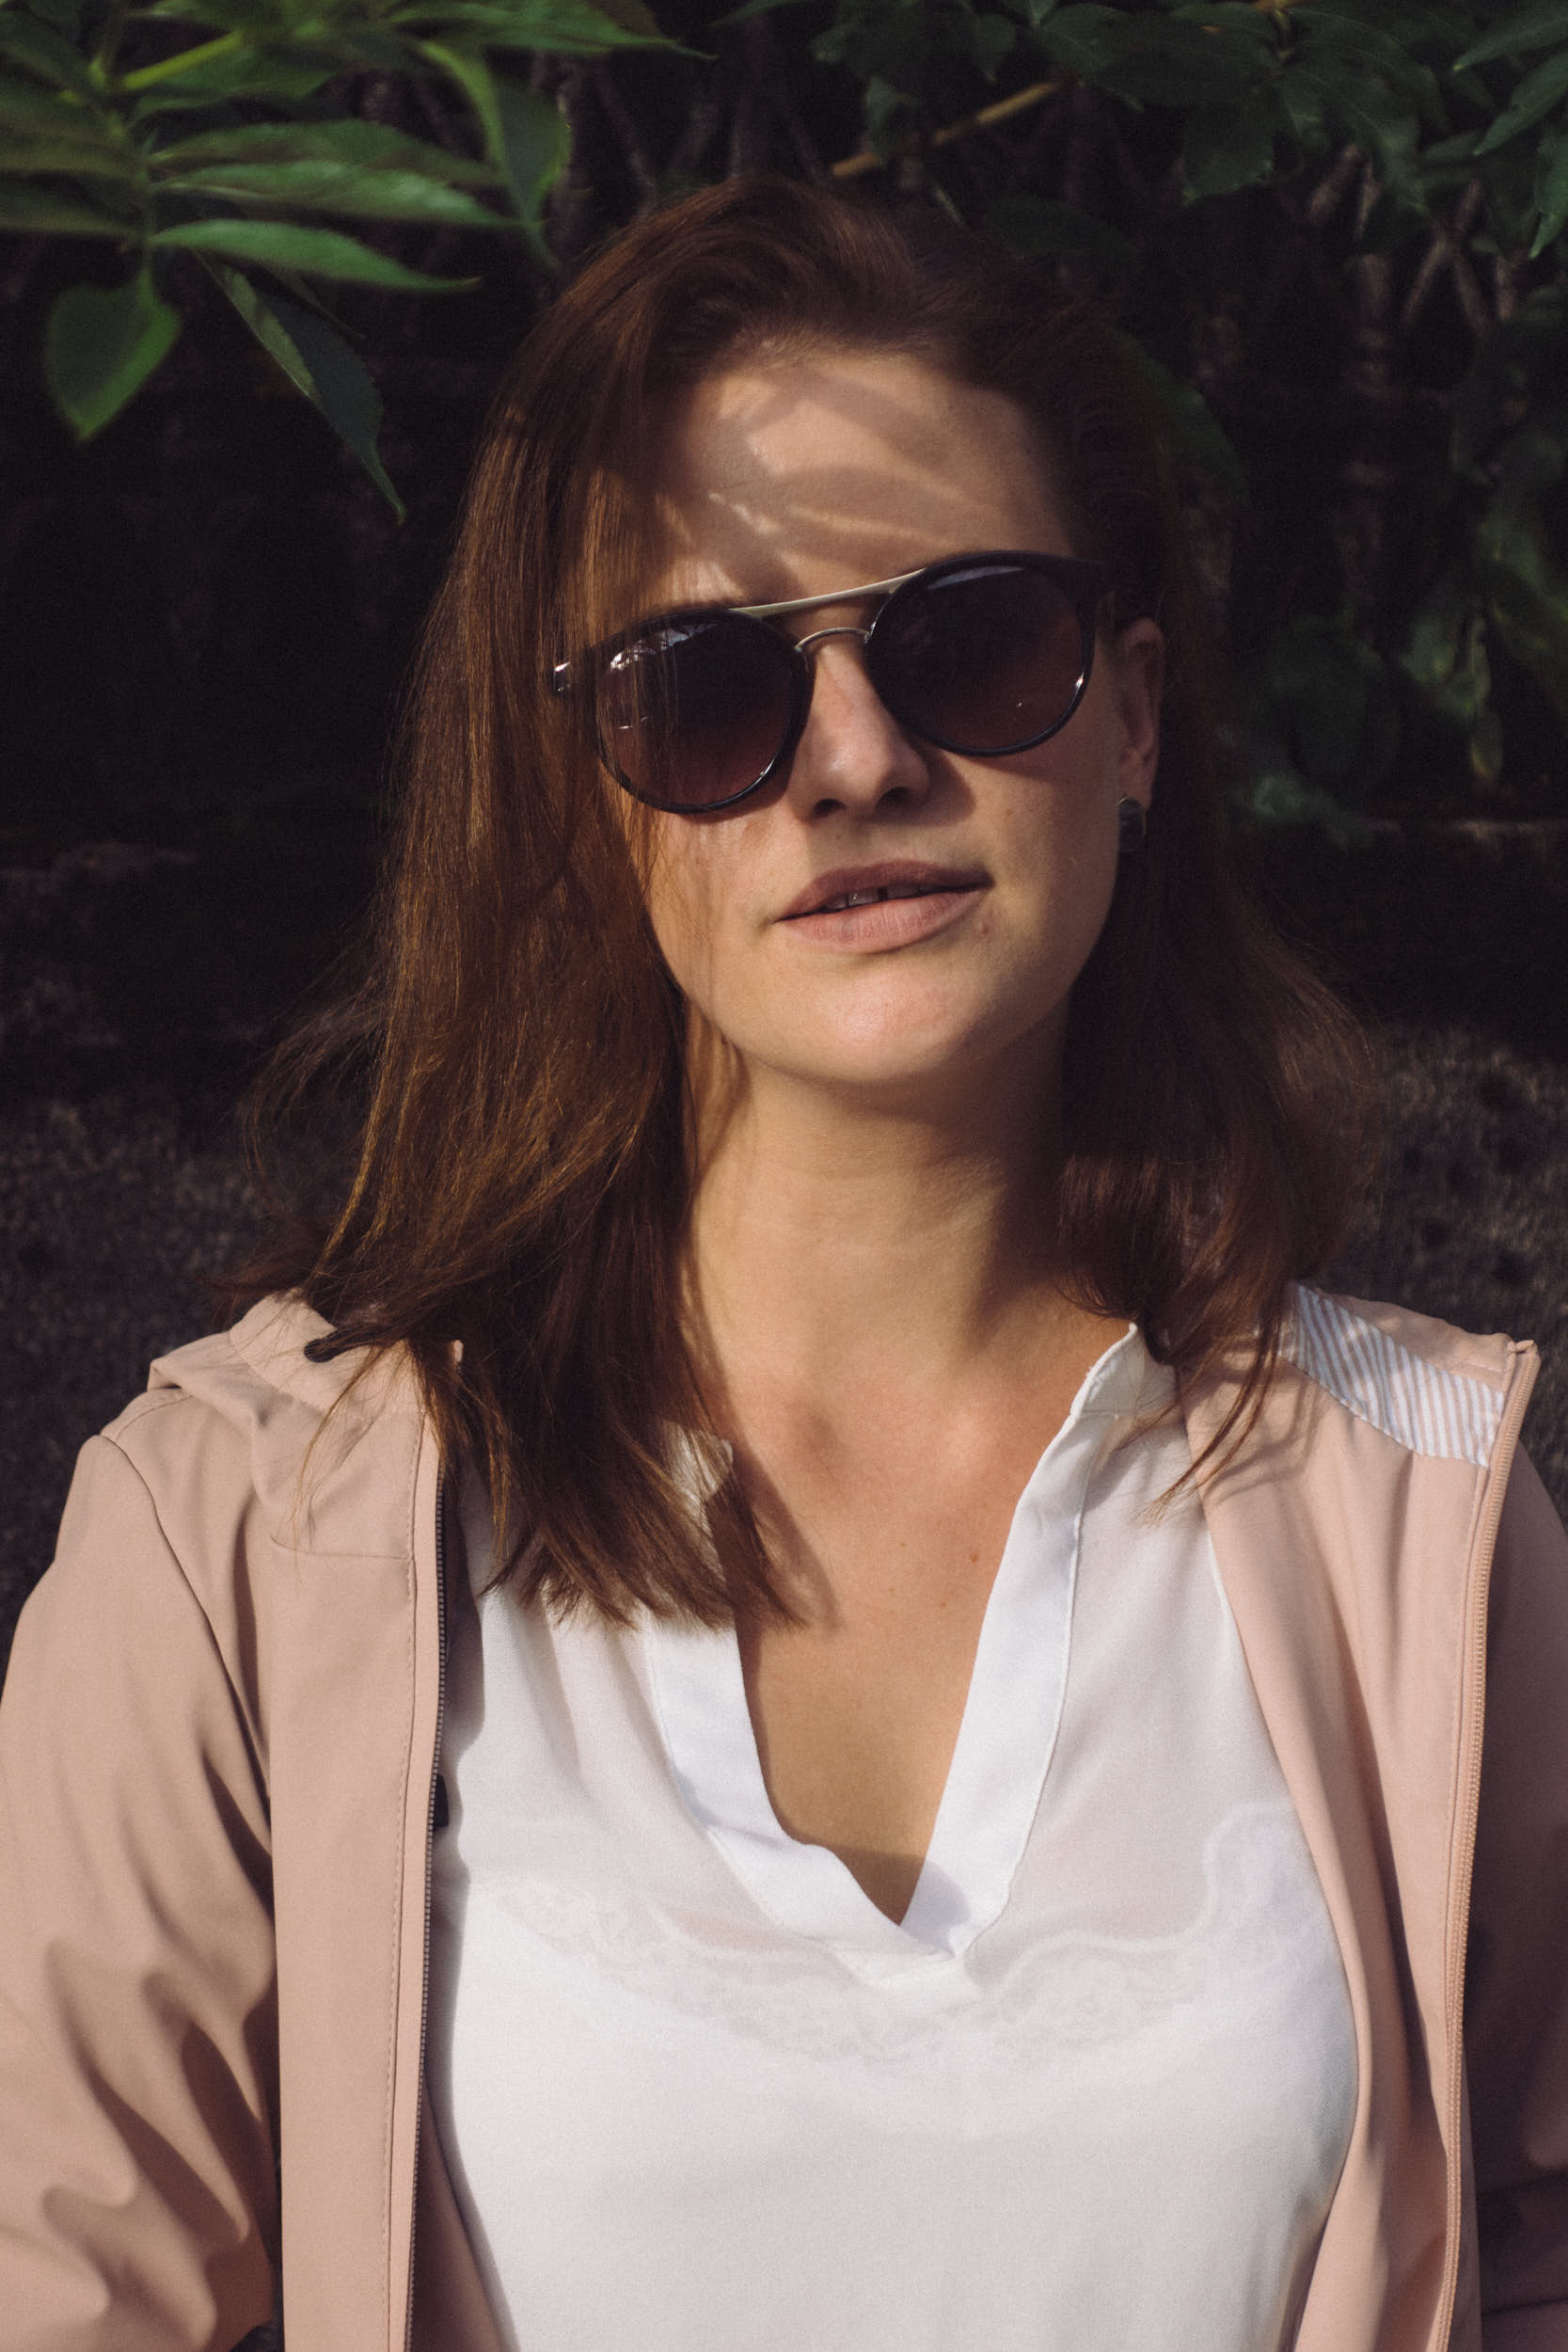 Portrait of a woman in sunglasses with leaves shadows pattern on the face.